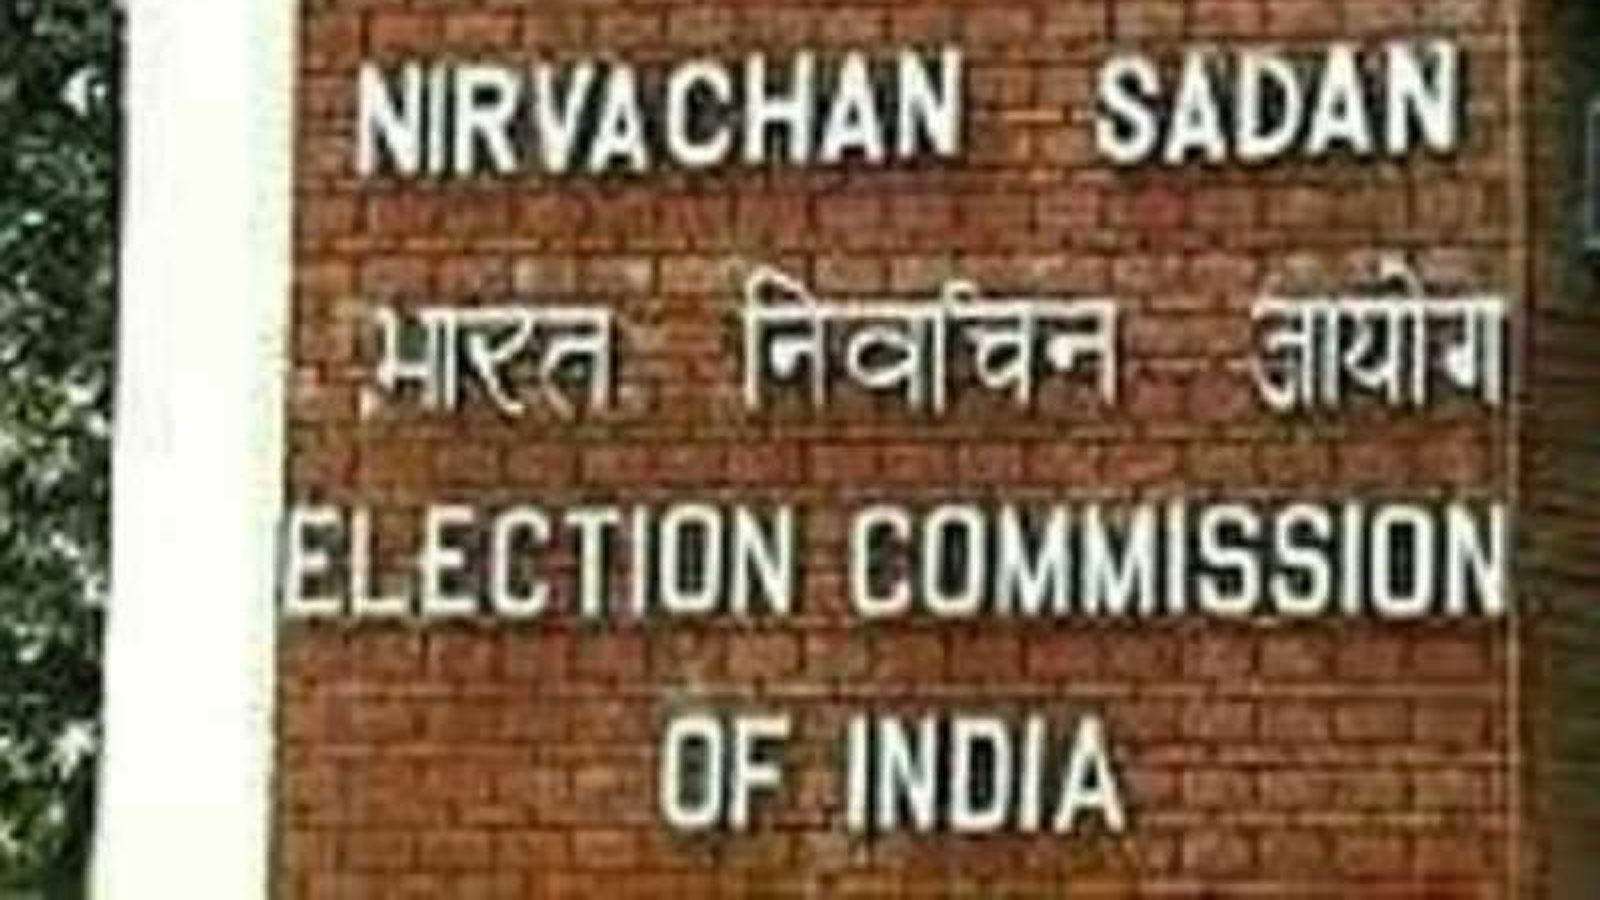 bihar-elections-2020-ec-announces-poll-dates-to-be-held-in-3-phases